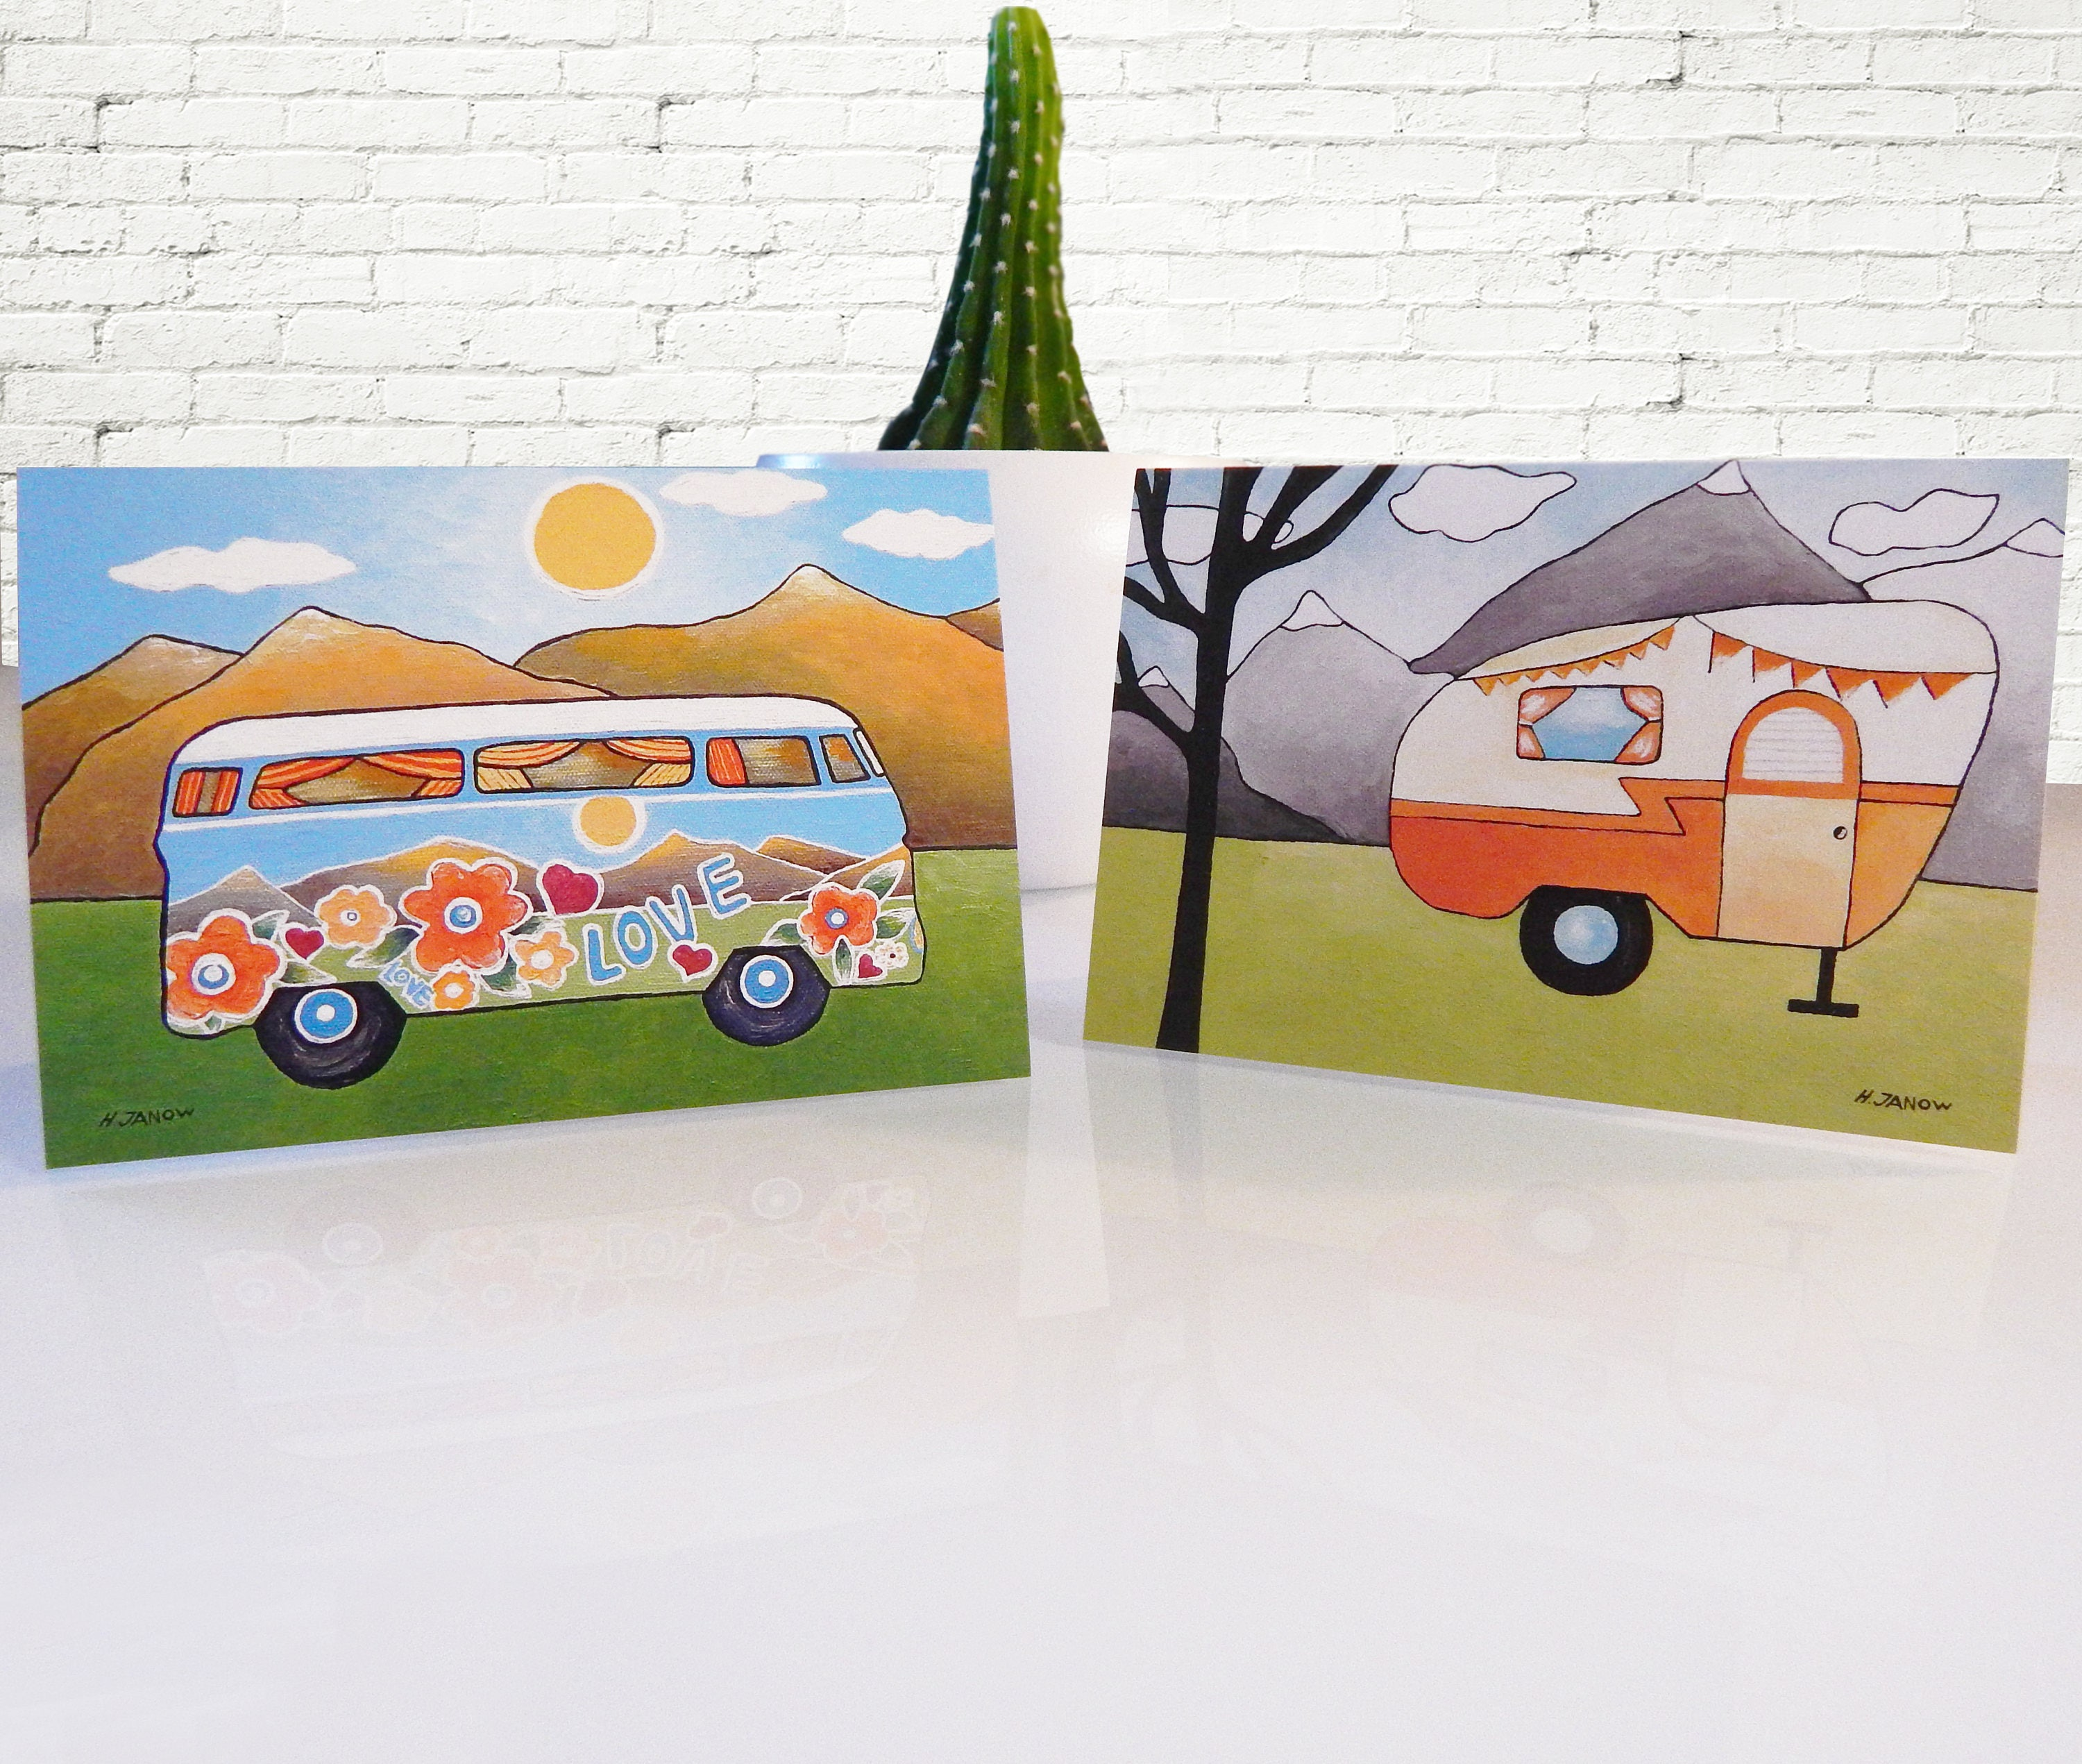 Adventure cards fine art travel greeting cards camping vacation adventure cards fine art travel greeting cards camping vacation cards road trip journey kristyandbryce Image collections